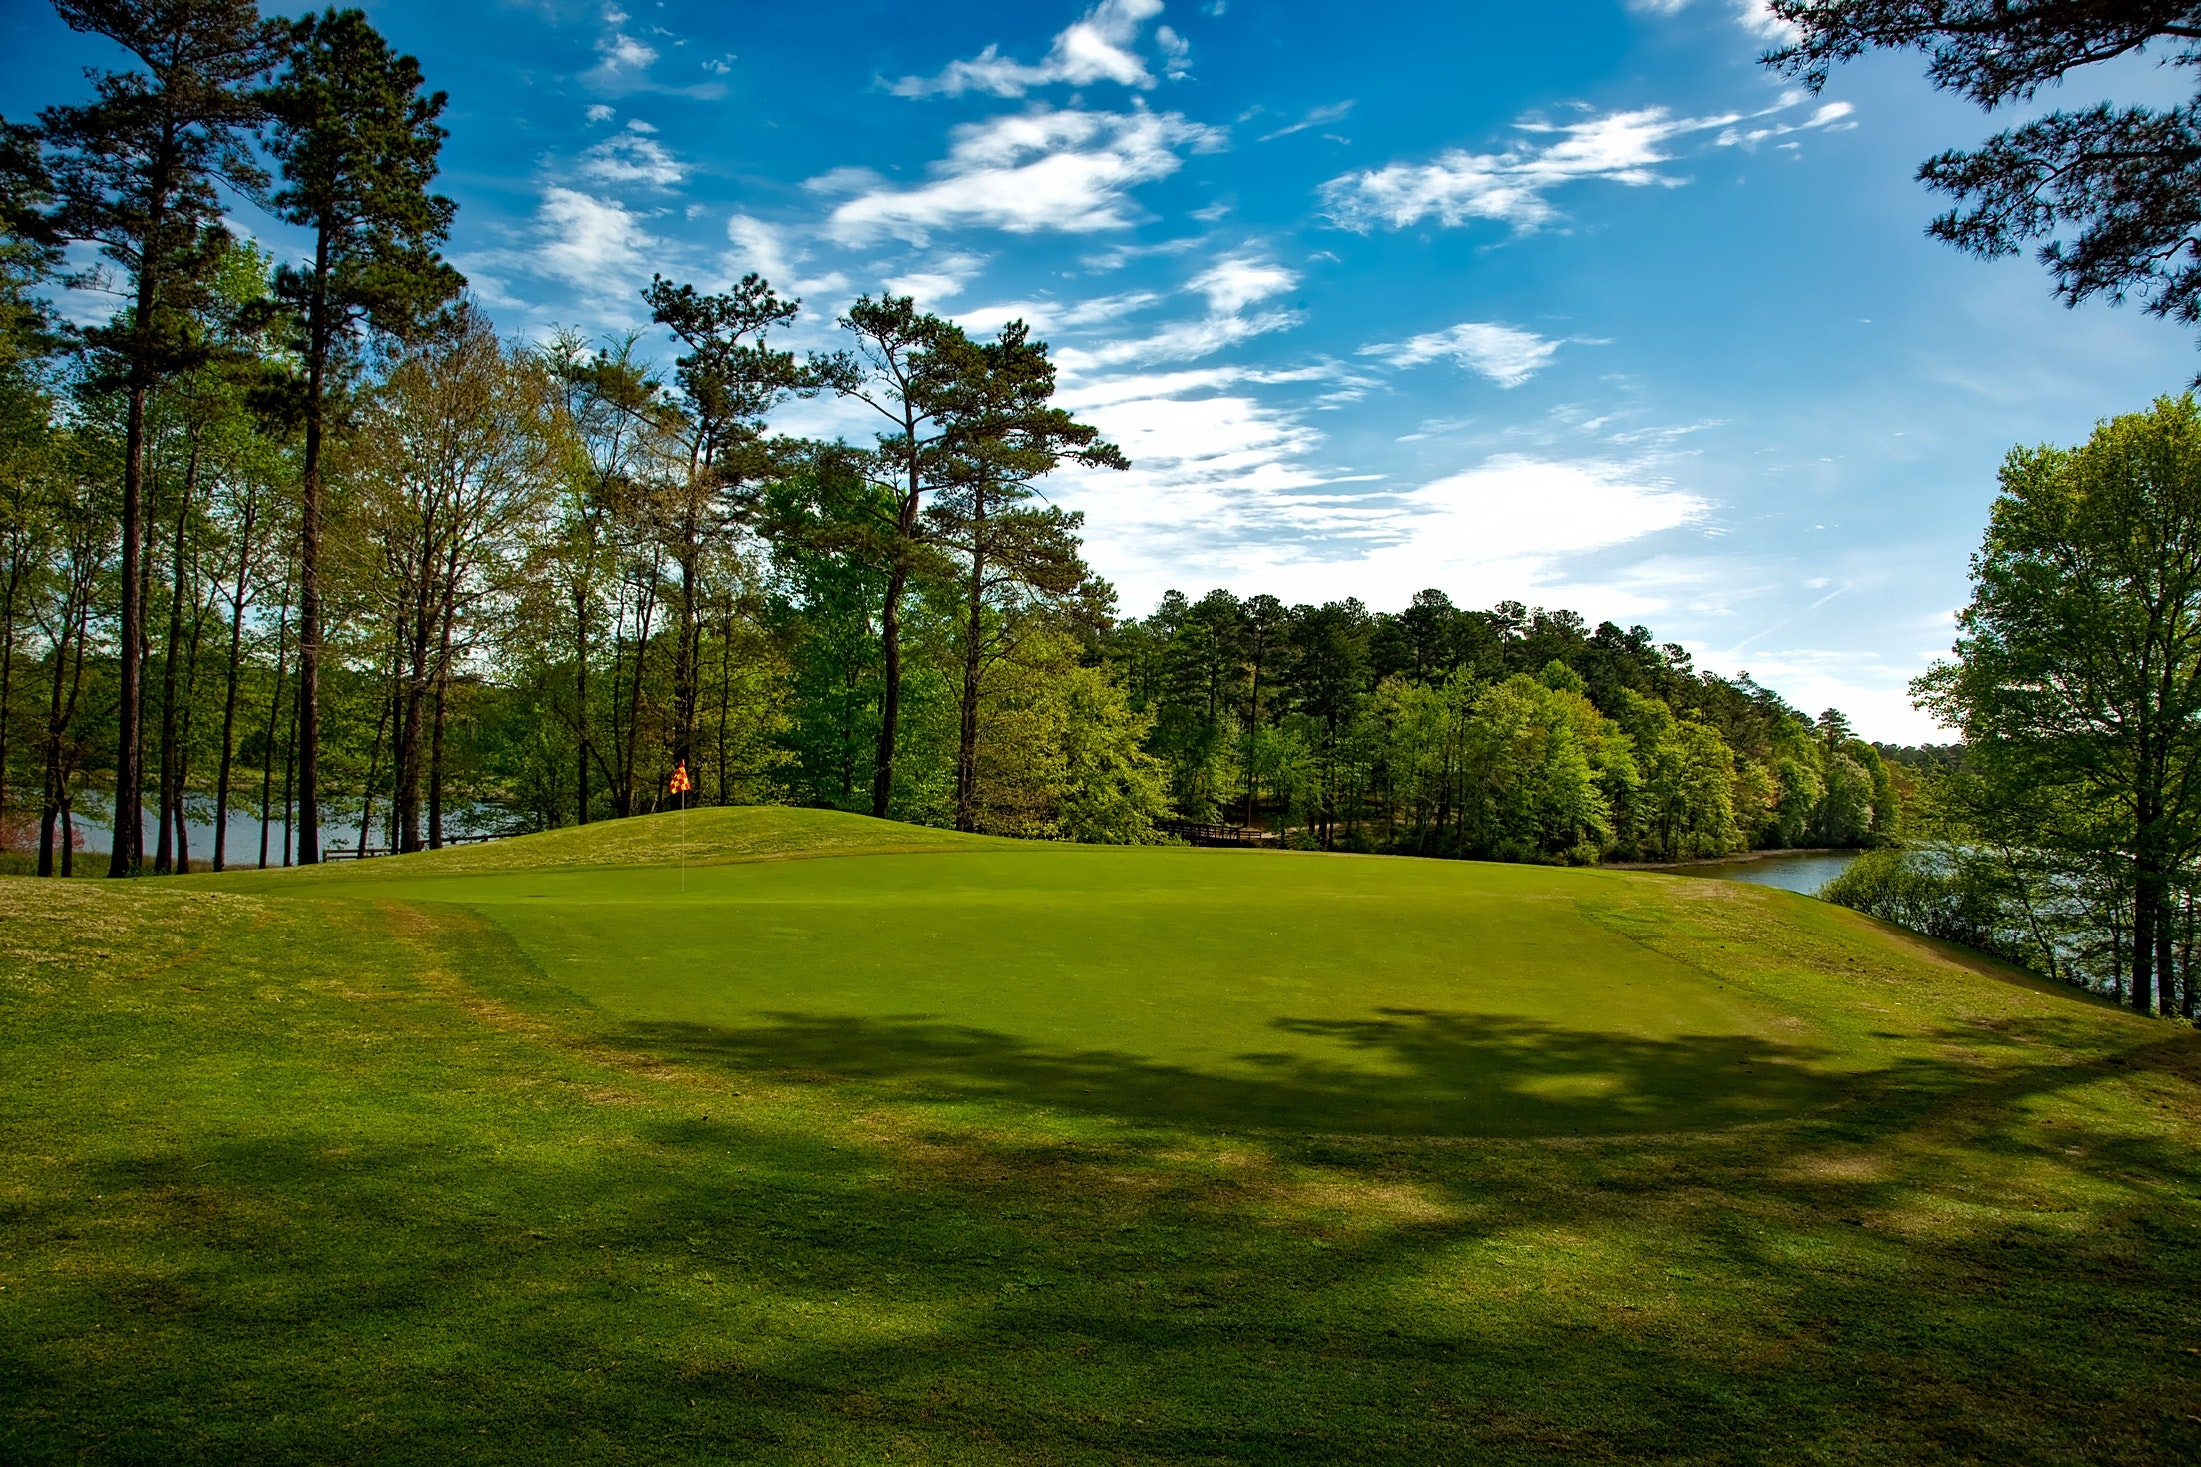 Planning a Golf Trip in Cheshire